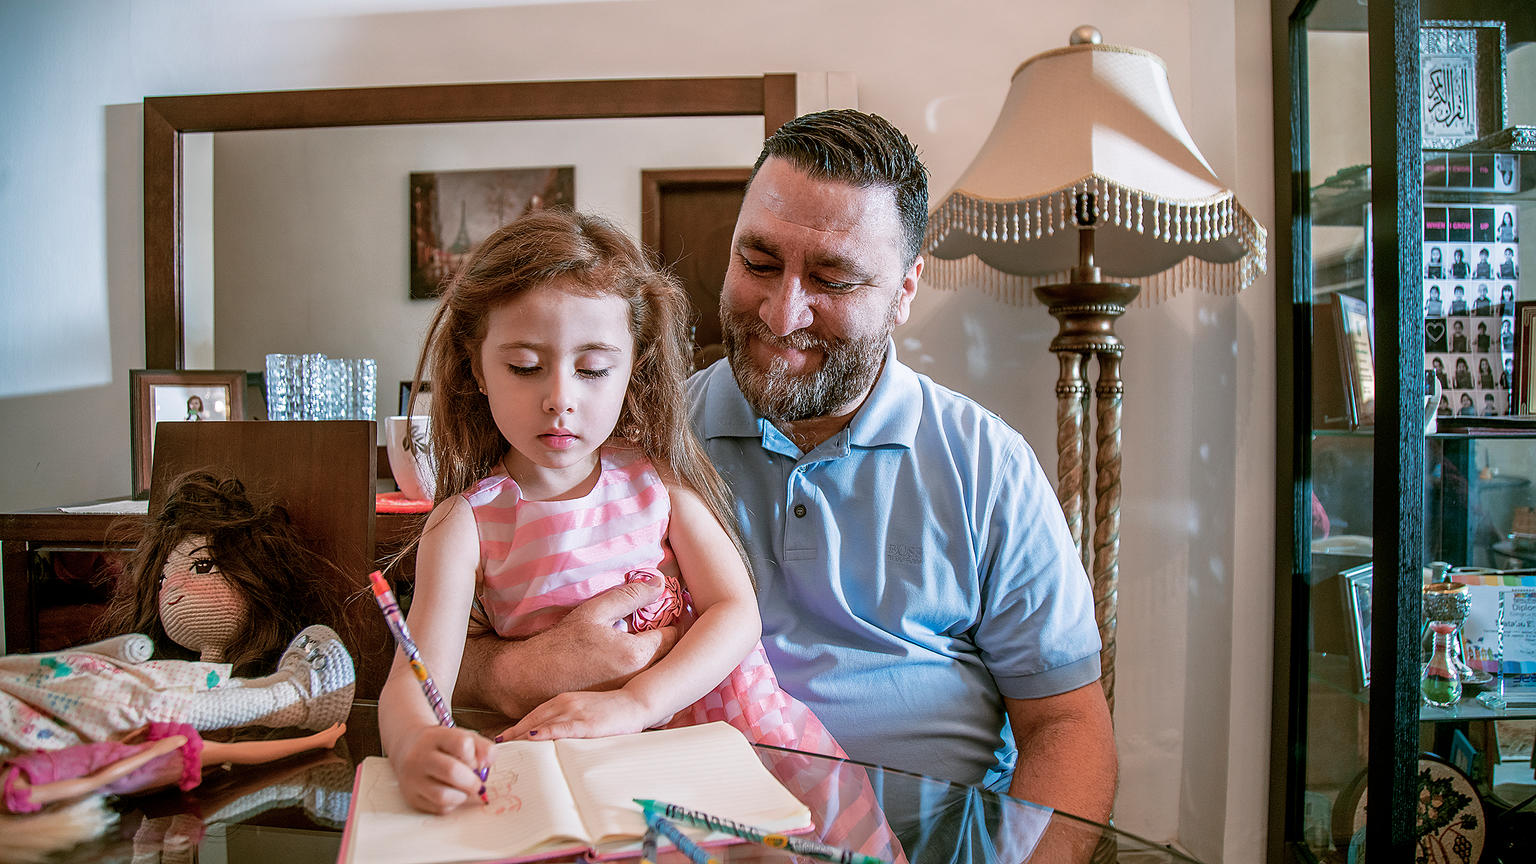 A caregiver father and his daughter at home